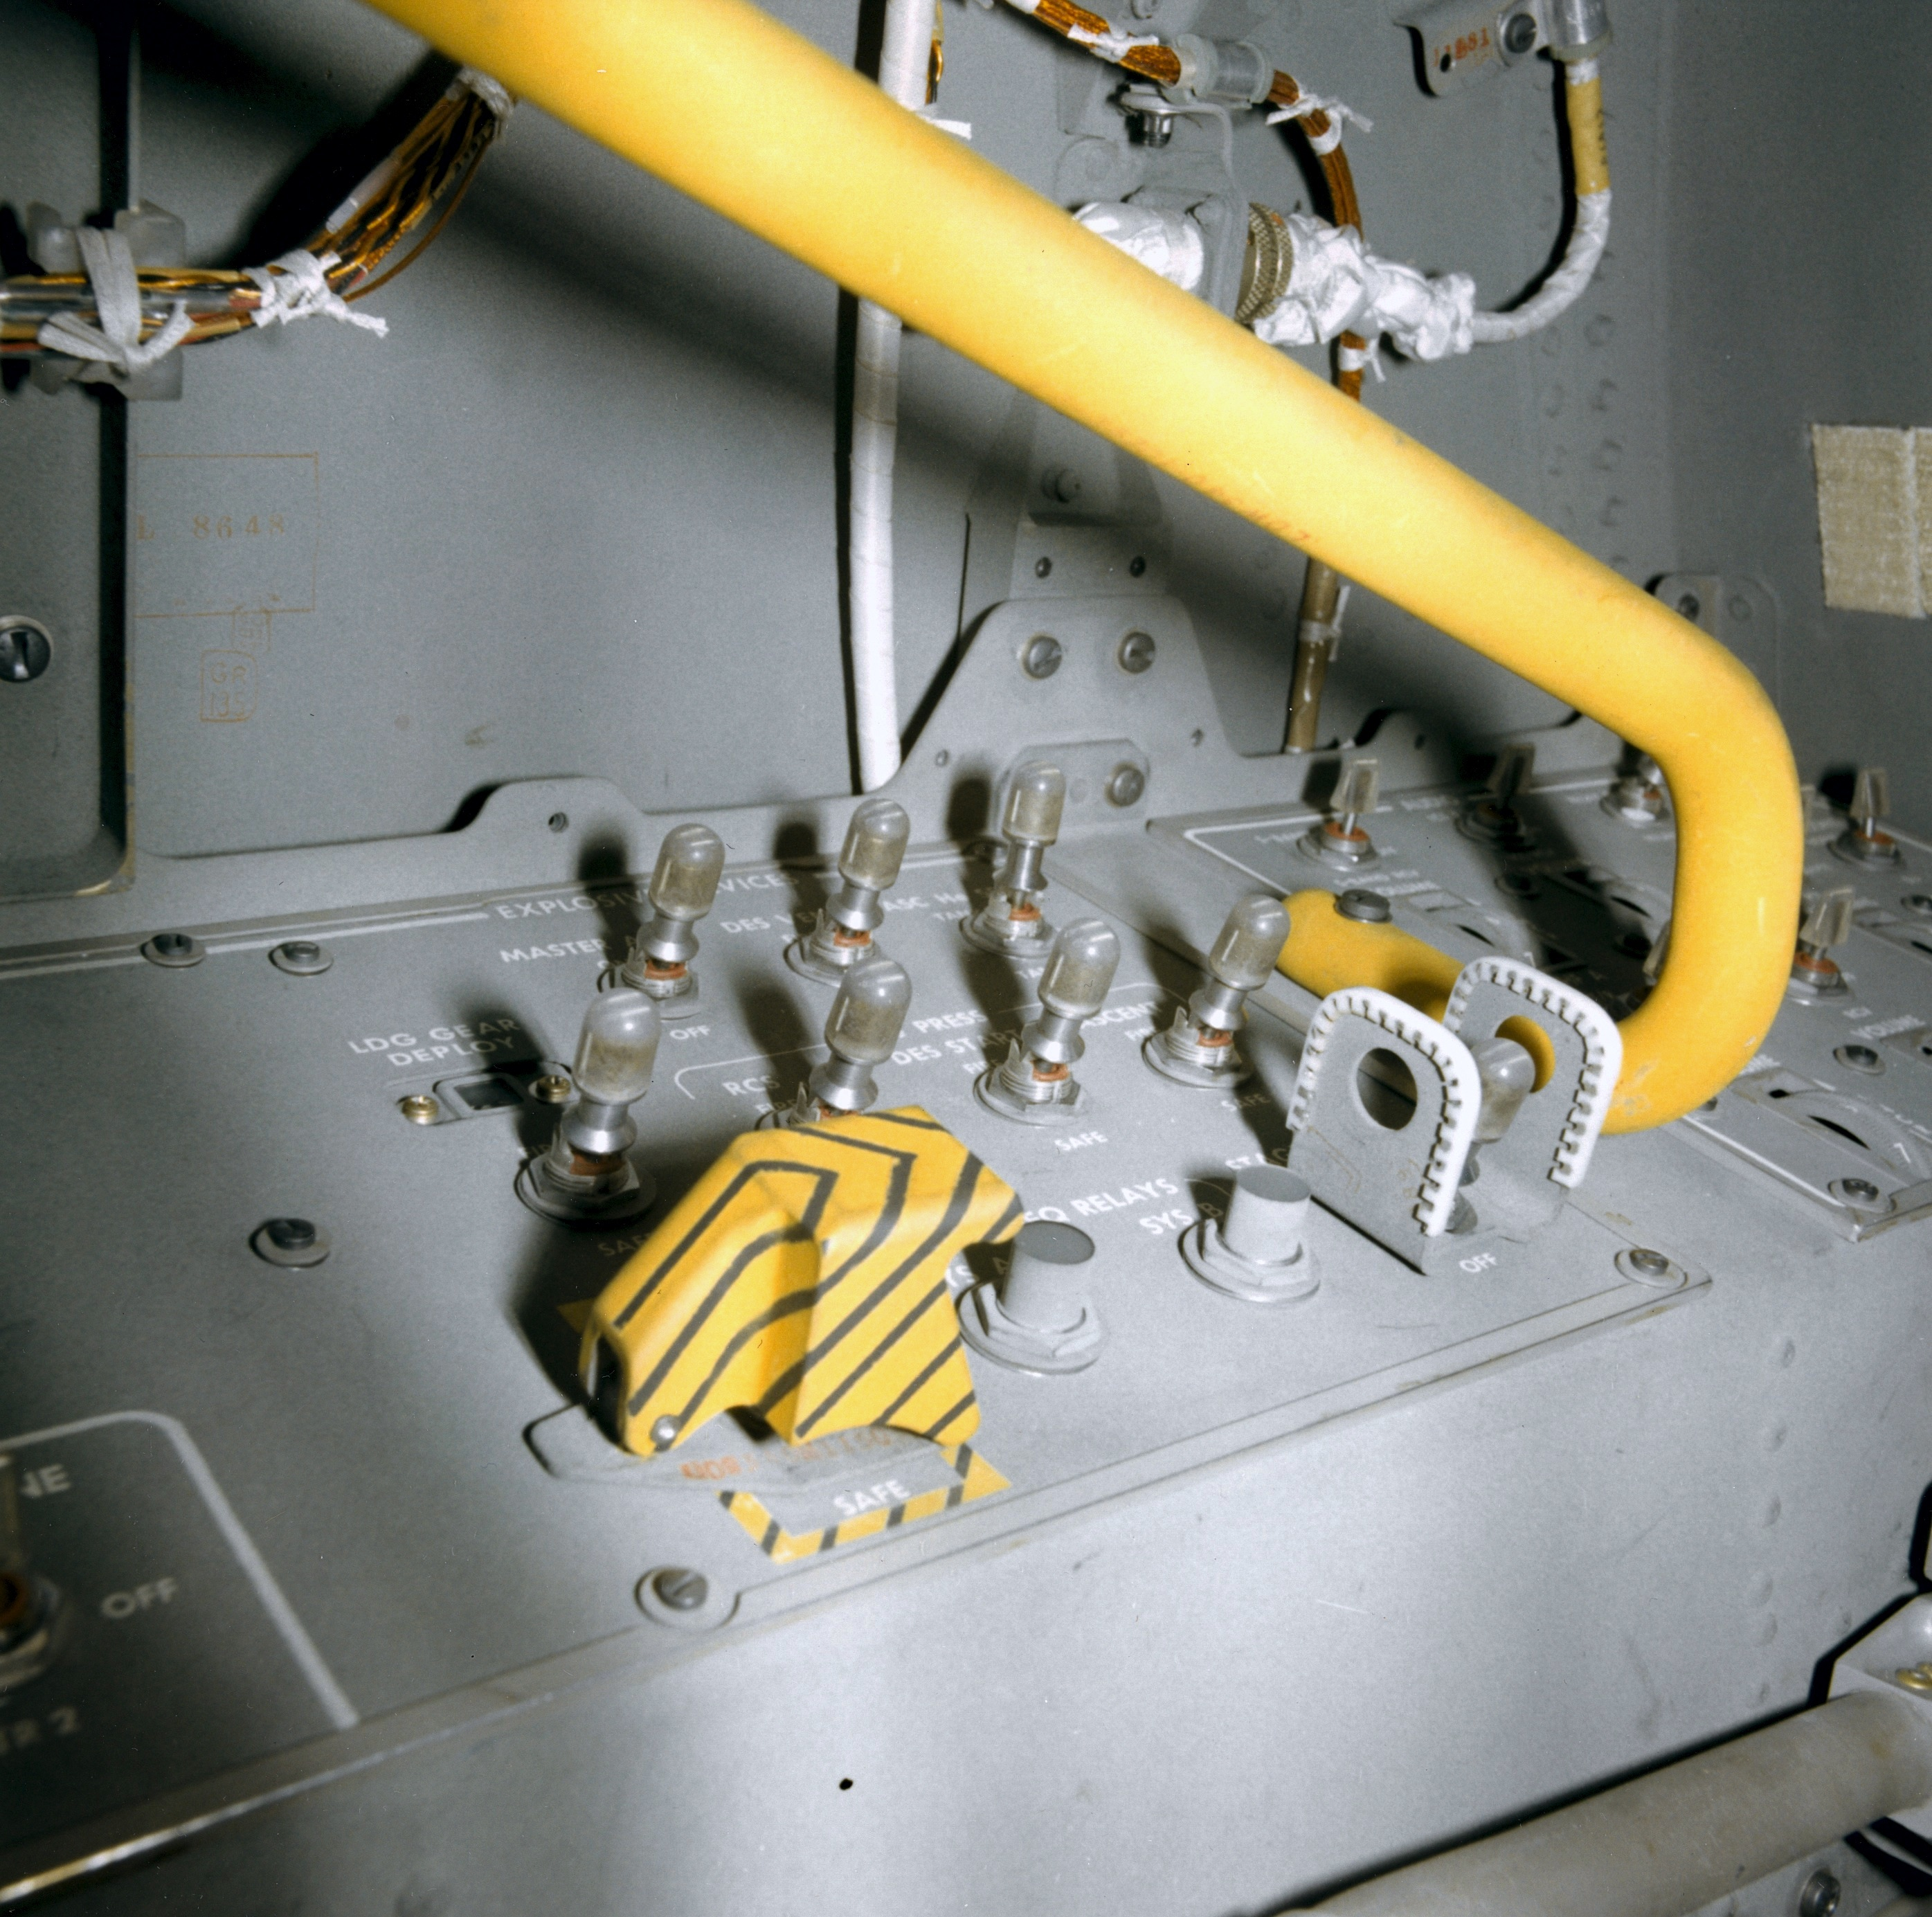 Lm 12 Challenger Close Out Photos The Central Wiring Panel Cwp Chapter 1 7 8 Section Explosive Device Controls 18 Mb